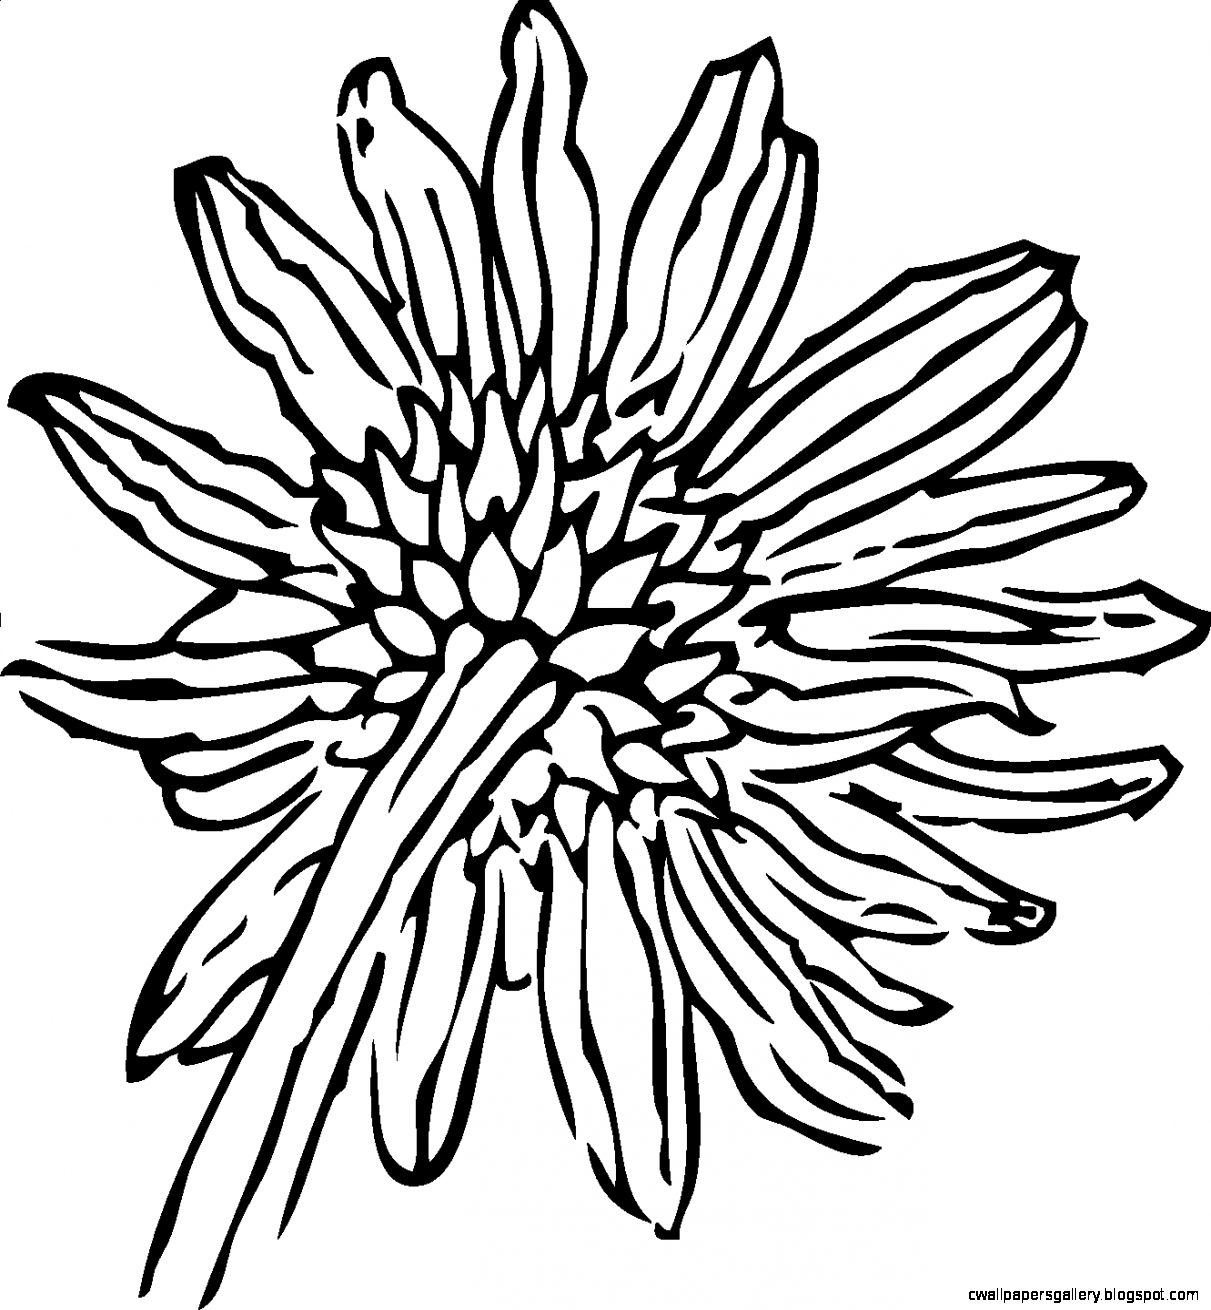 Black And White Sunflower Clipart | Wallpapers Gallery for Clipart Sunflower Black And White  155sfw